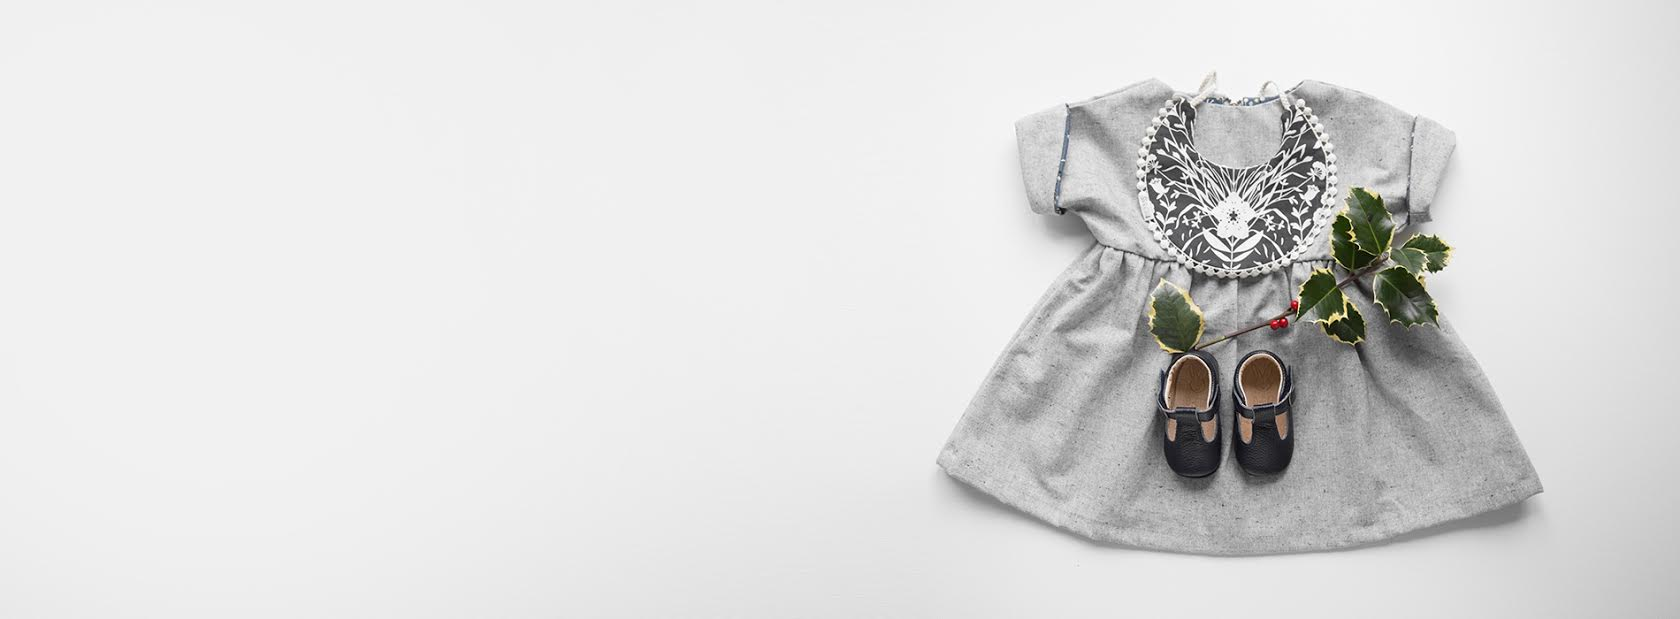 New baby gifts - Aston Baby new arrivals